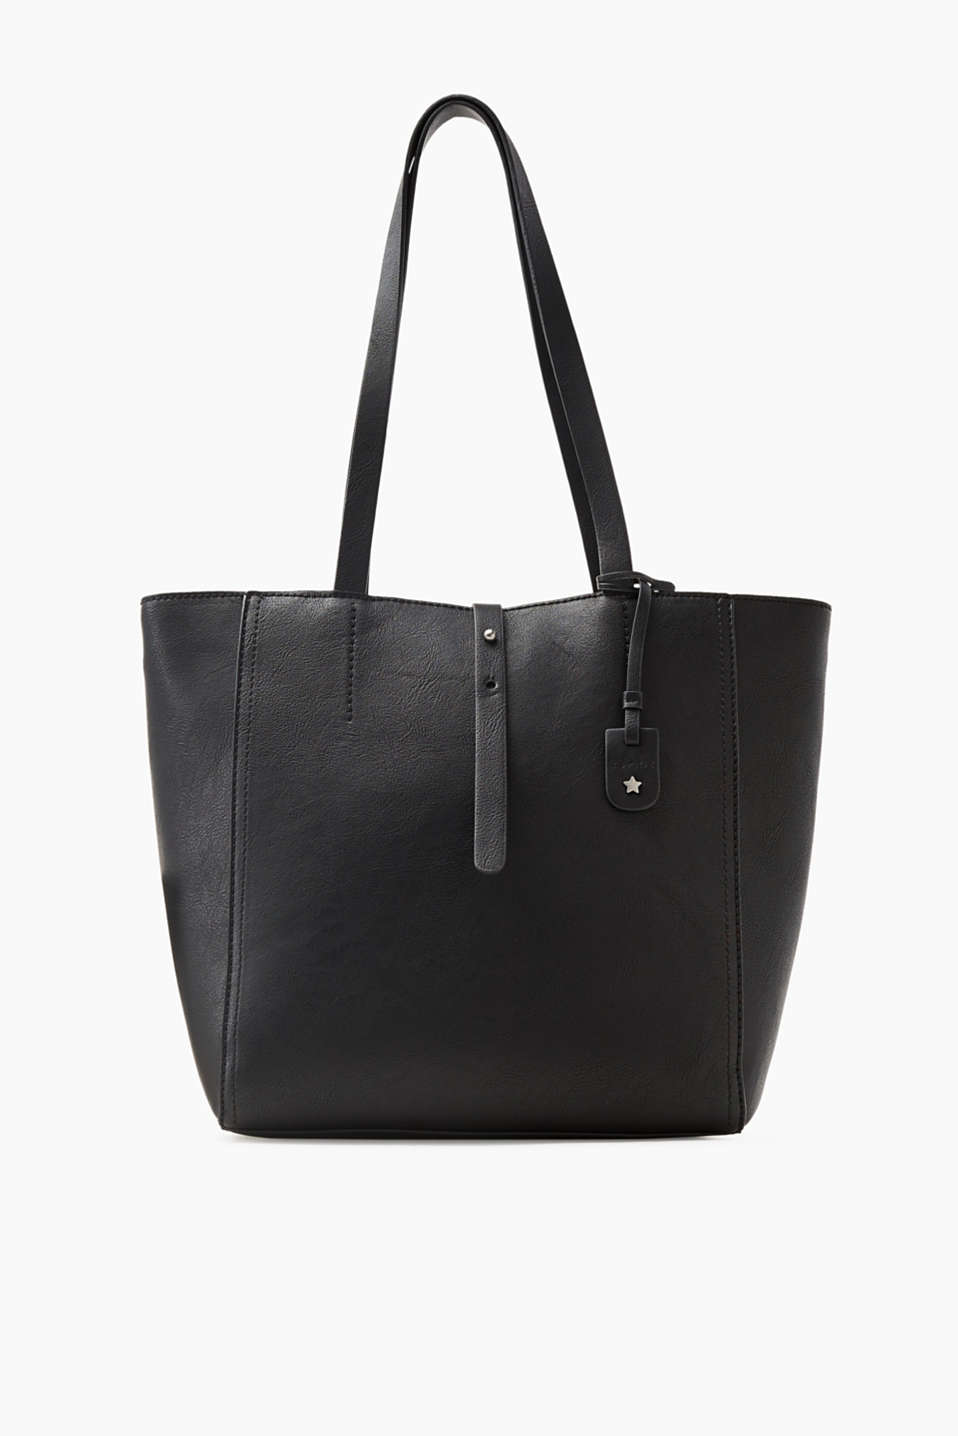 Contemporary and compact! The fantastic format and classic faux leather make this shopper a little bit special